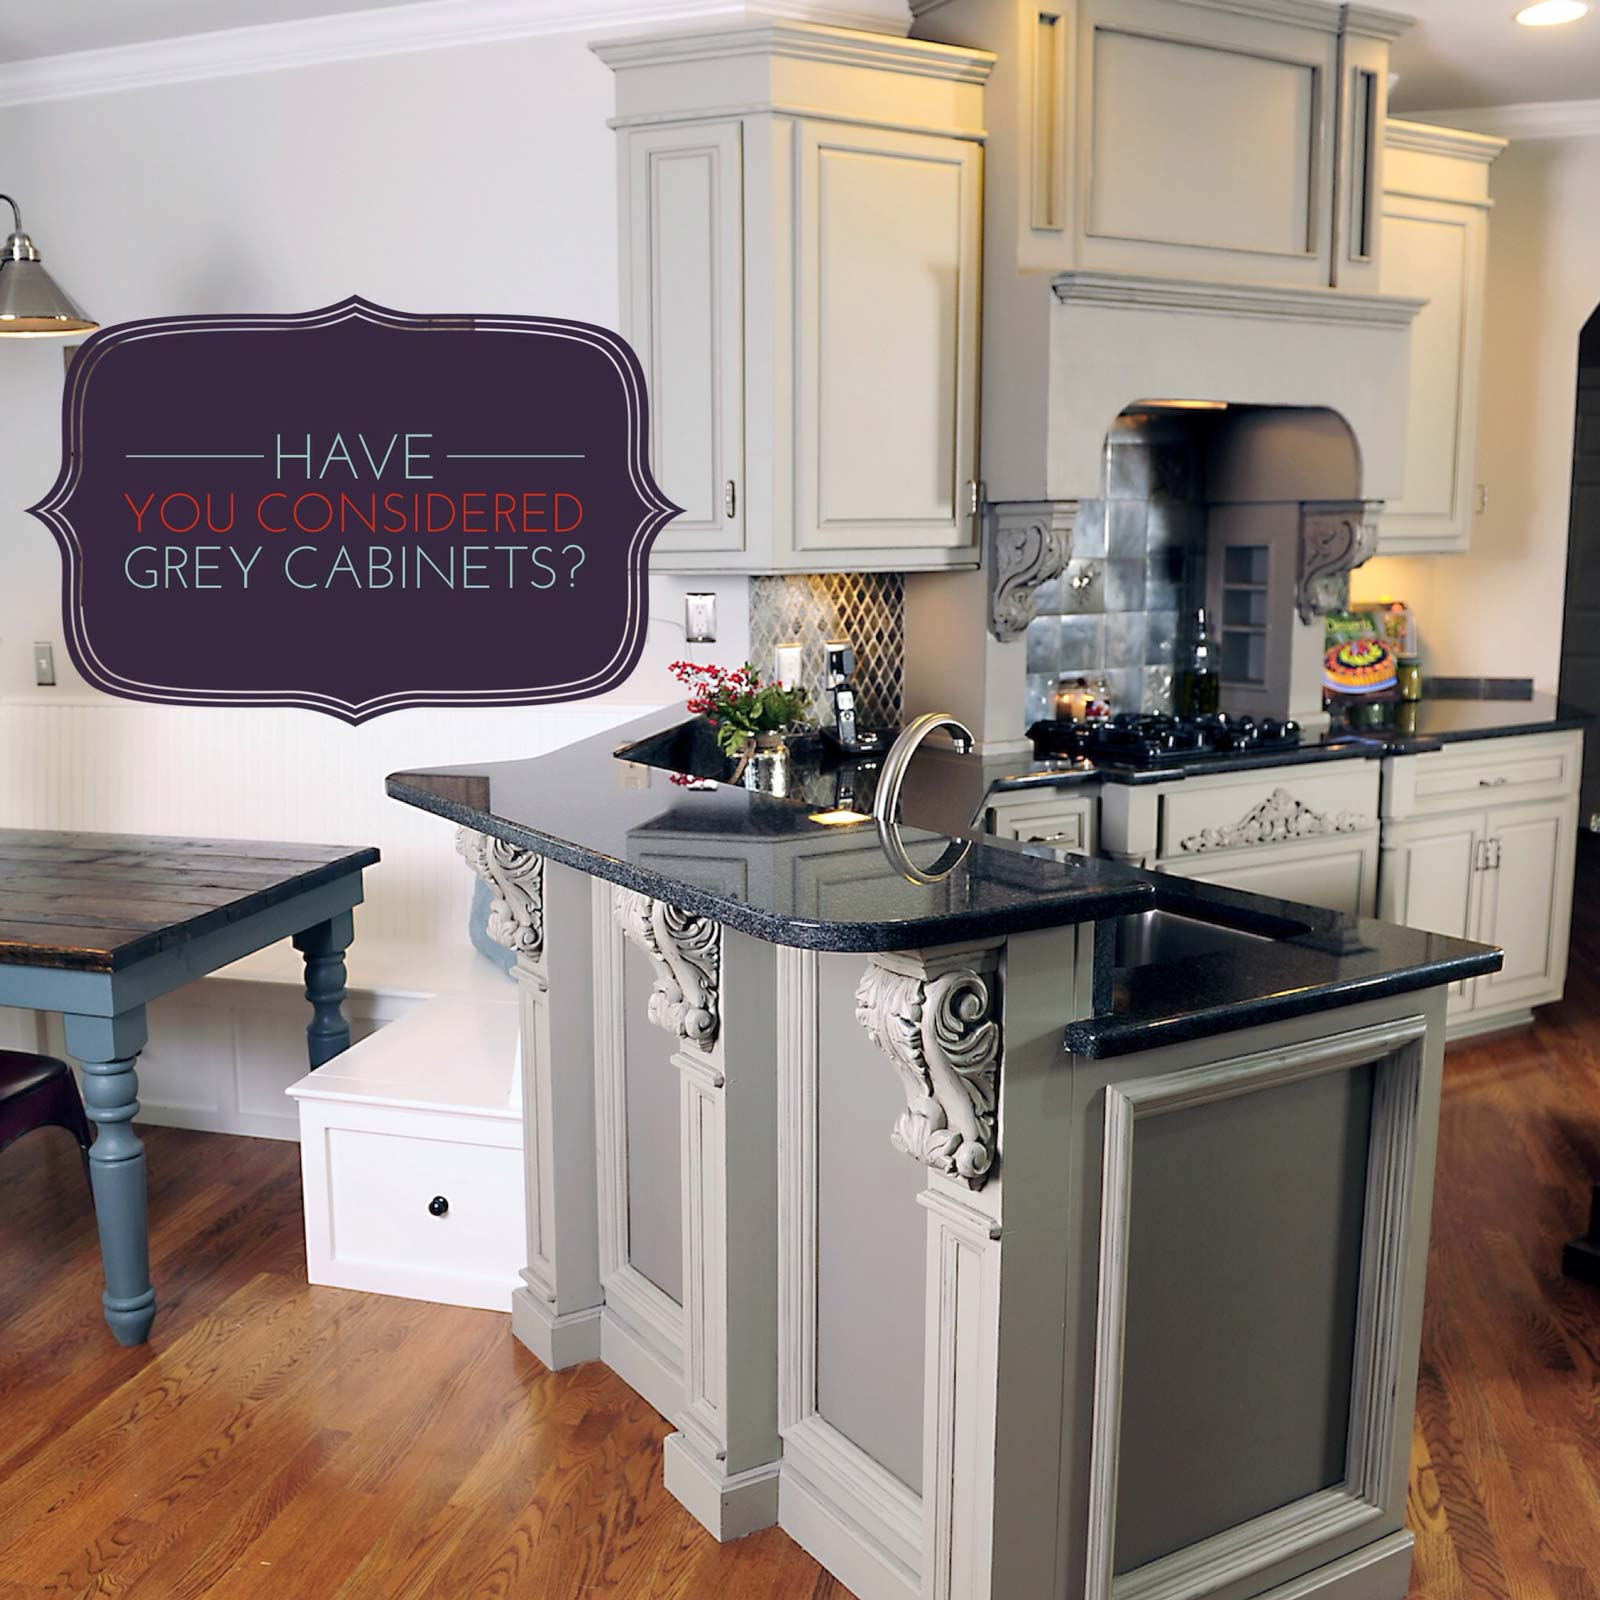 & Have you considered Grey Kitchen Cabinets?